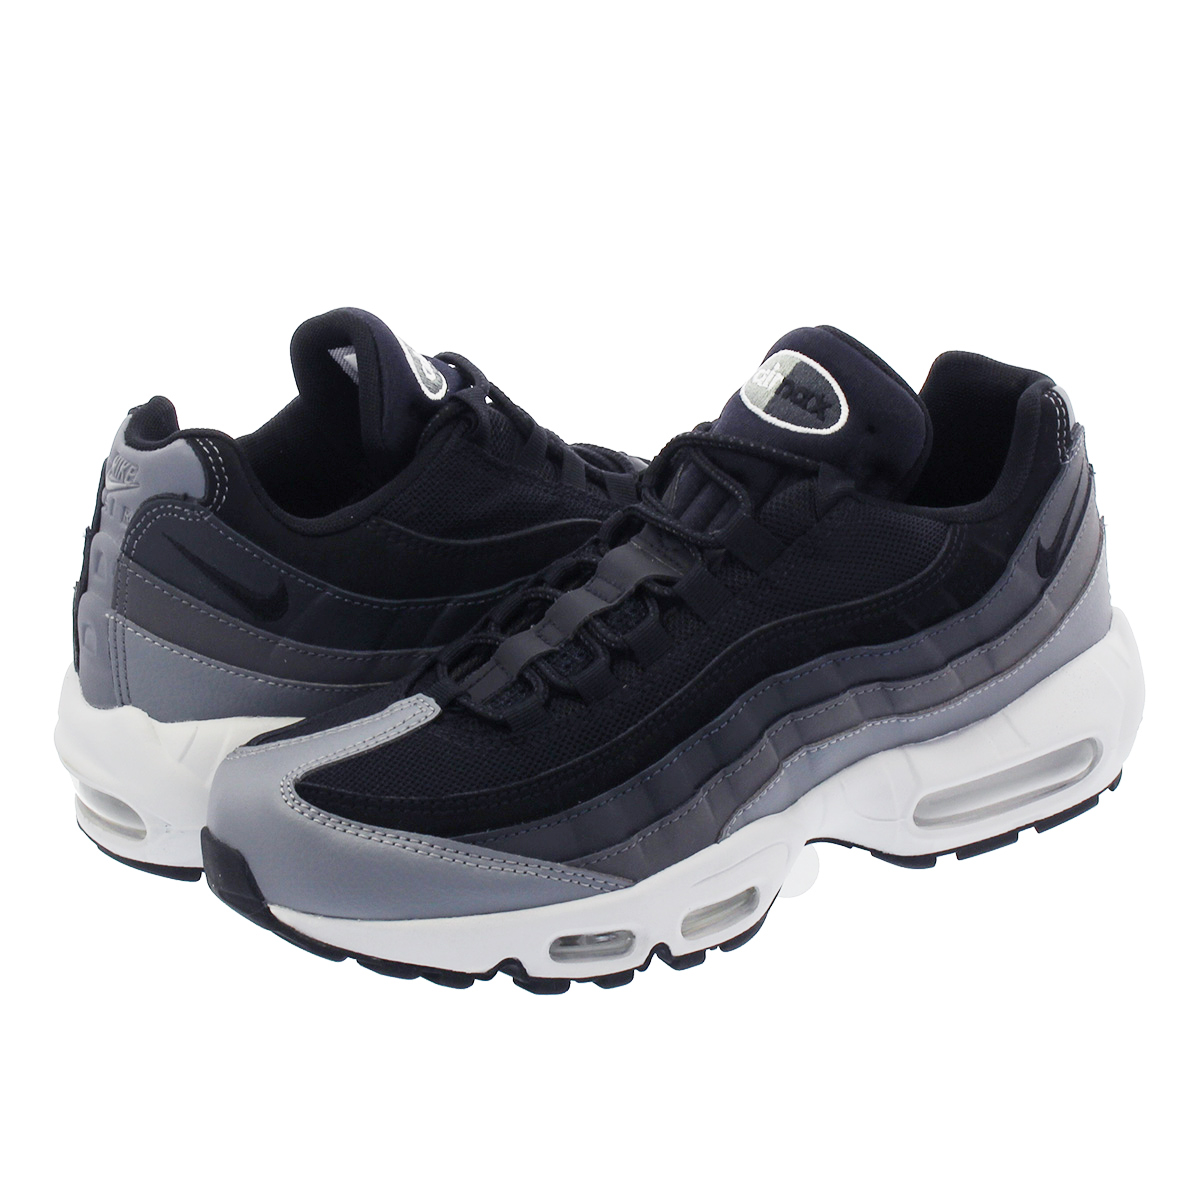 aaecf41c8e1 SELECT SHOP LOWTEX  NIKE AIR MAX 95 ESSENTIAL Kie Ney AMAX 95 essential  BLACK ANTHRACITE DARK GREY